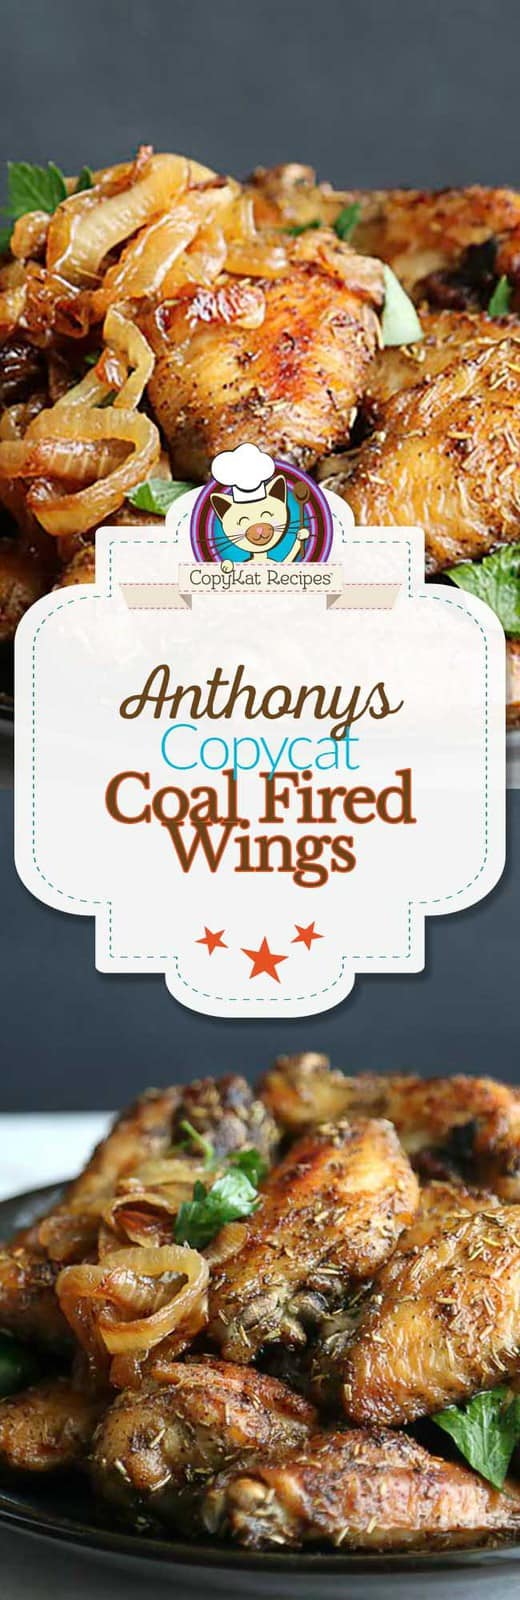 You can recreate the Anthony's Coal Fired Wings at home with this easy copycat recipe.